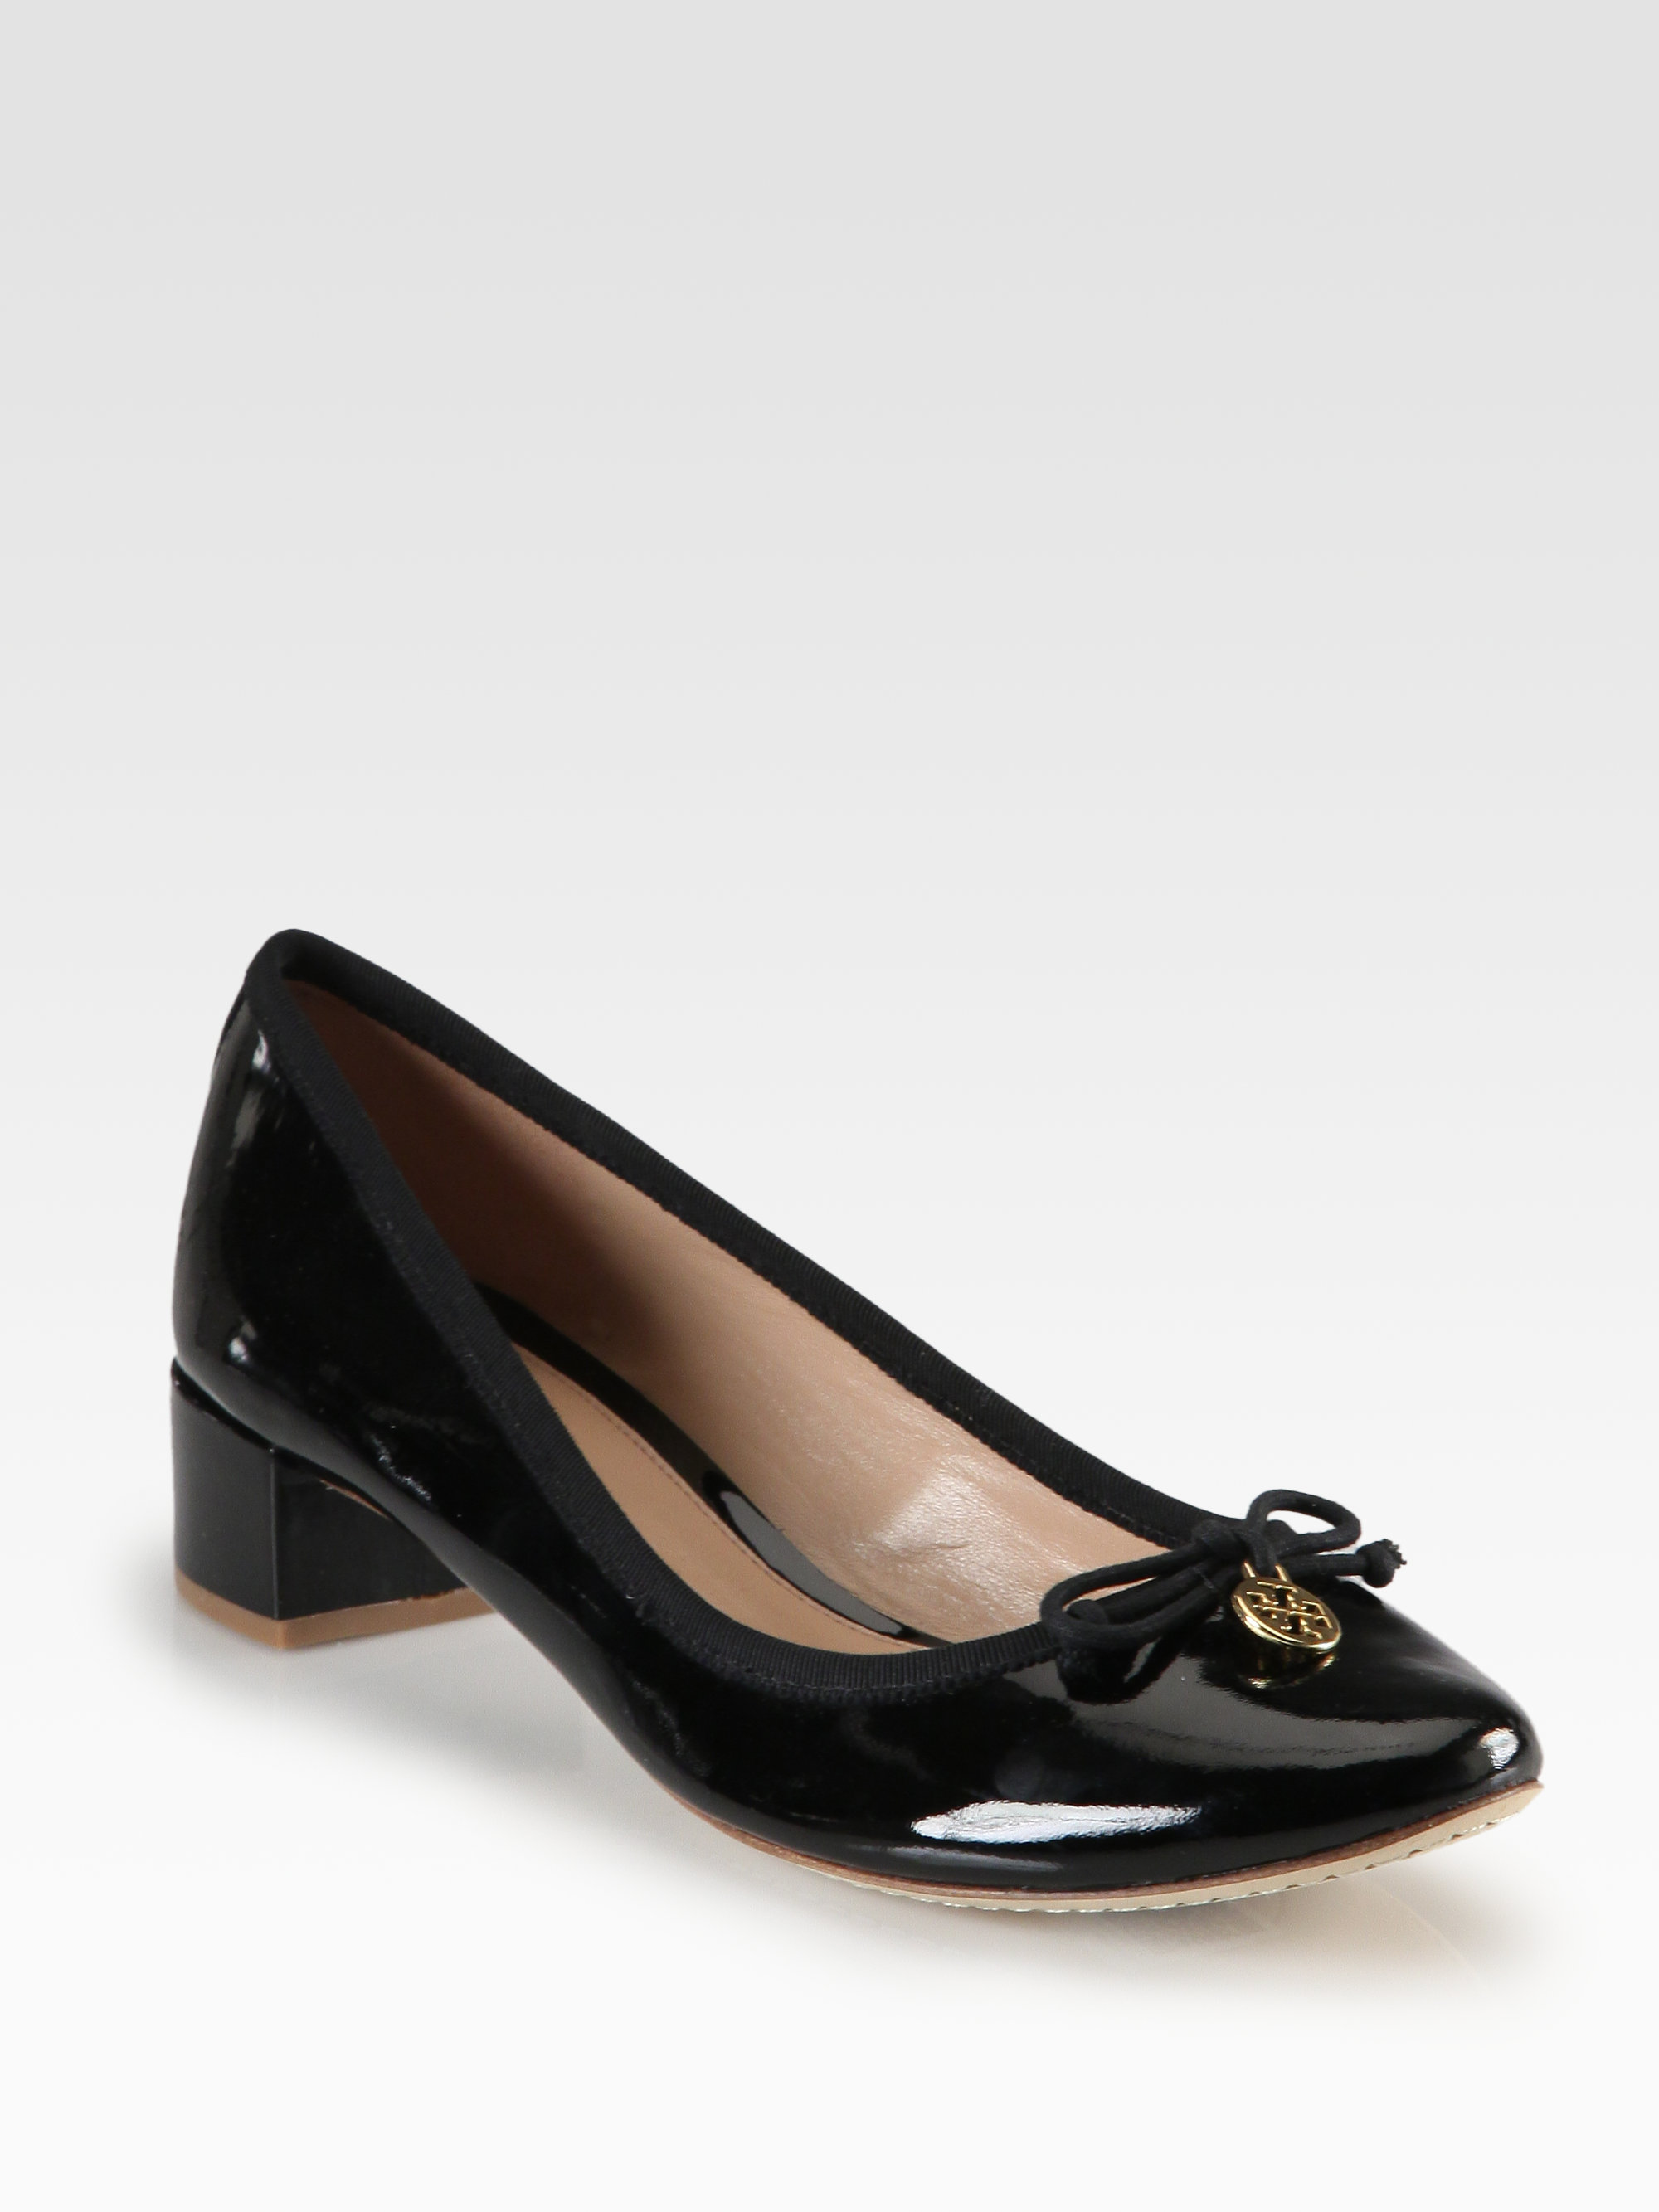 Tory Burch Women's Chelsea Leather Pumps Sale Sale Online Online Sale Online HoOcGADBBl